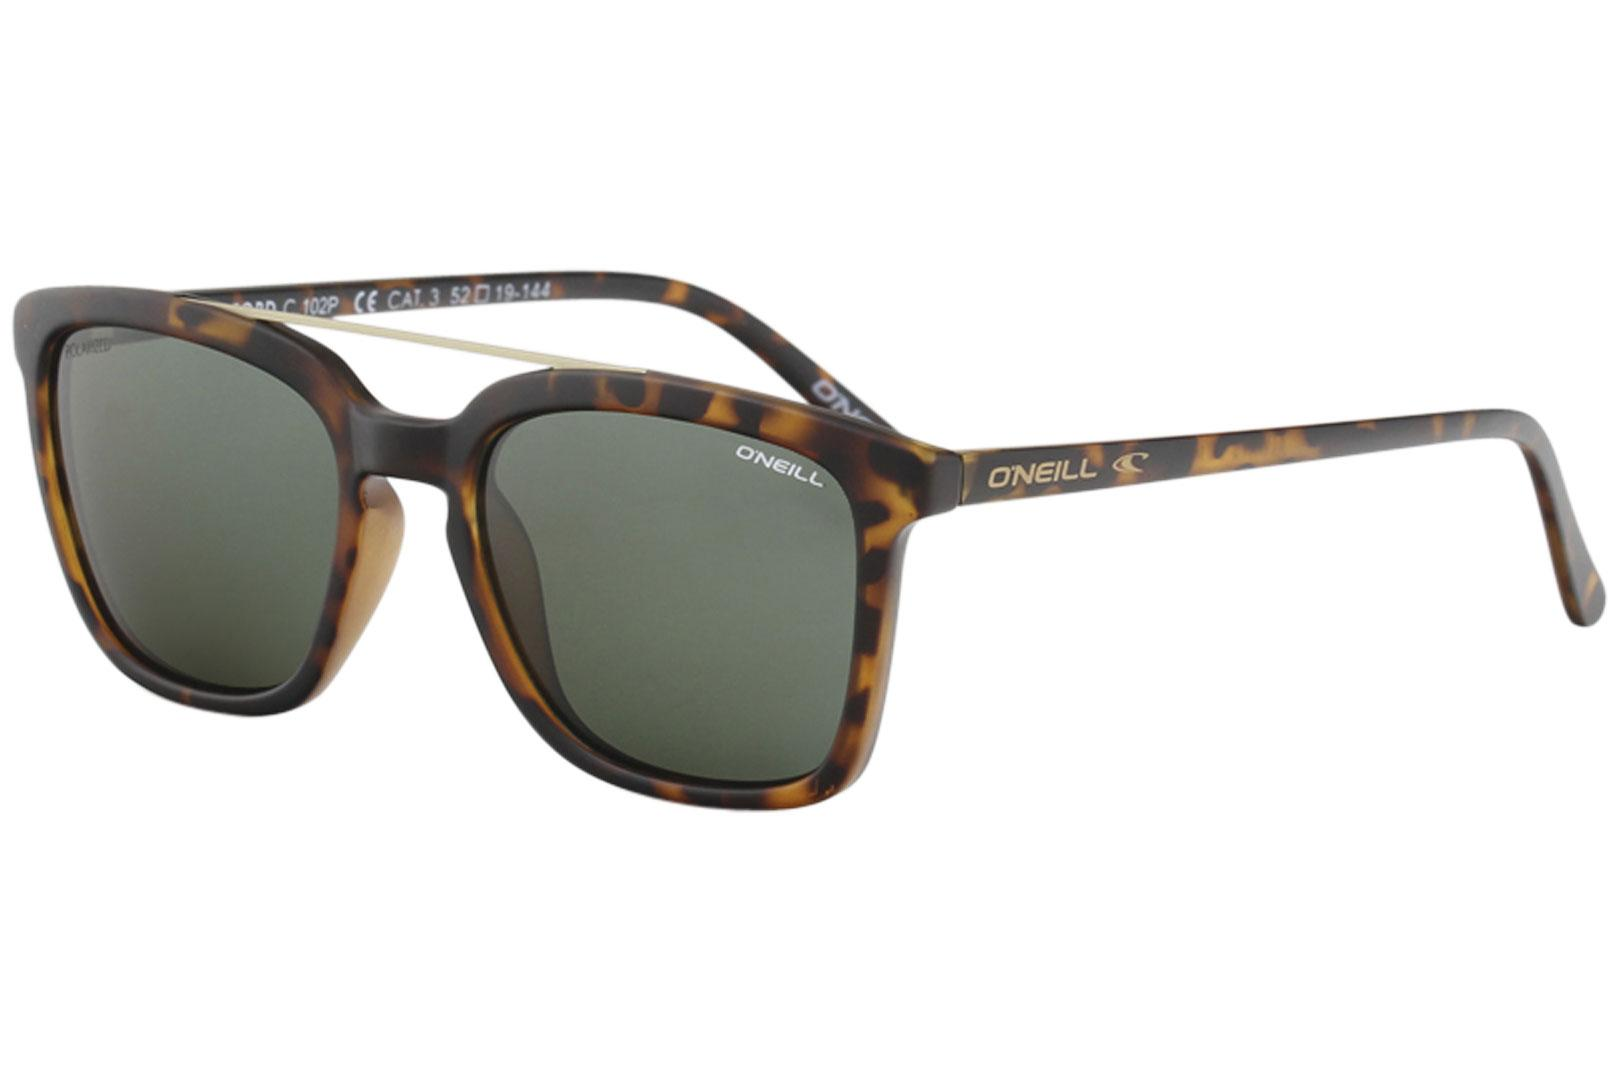 Image of O'Neill Men's Ons Beresford Fashion Rectangle Sunglasses - Tortoise/Green Polarized Gold Mirror   102 P - Lens 52 Bridge 19 Temple 144mm